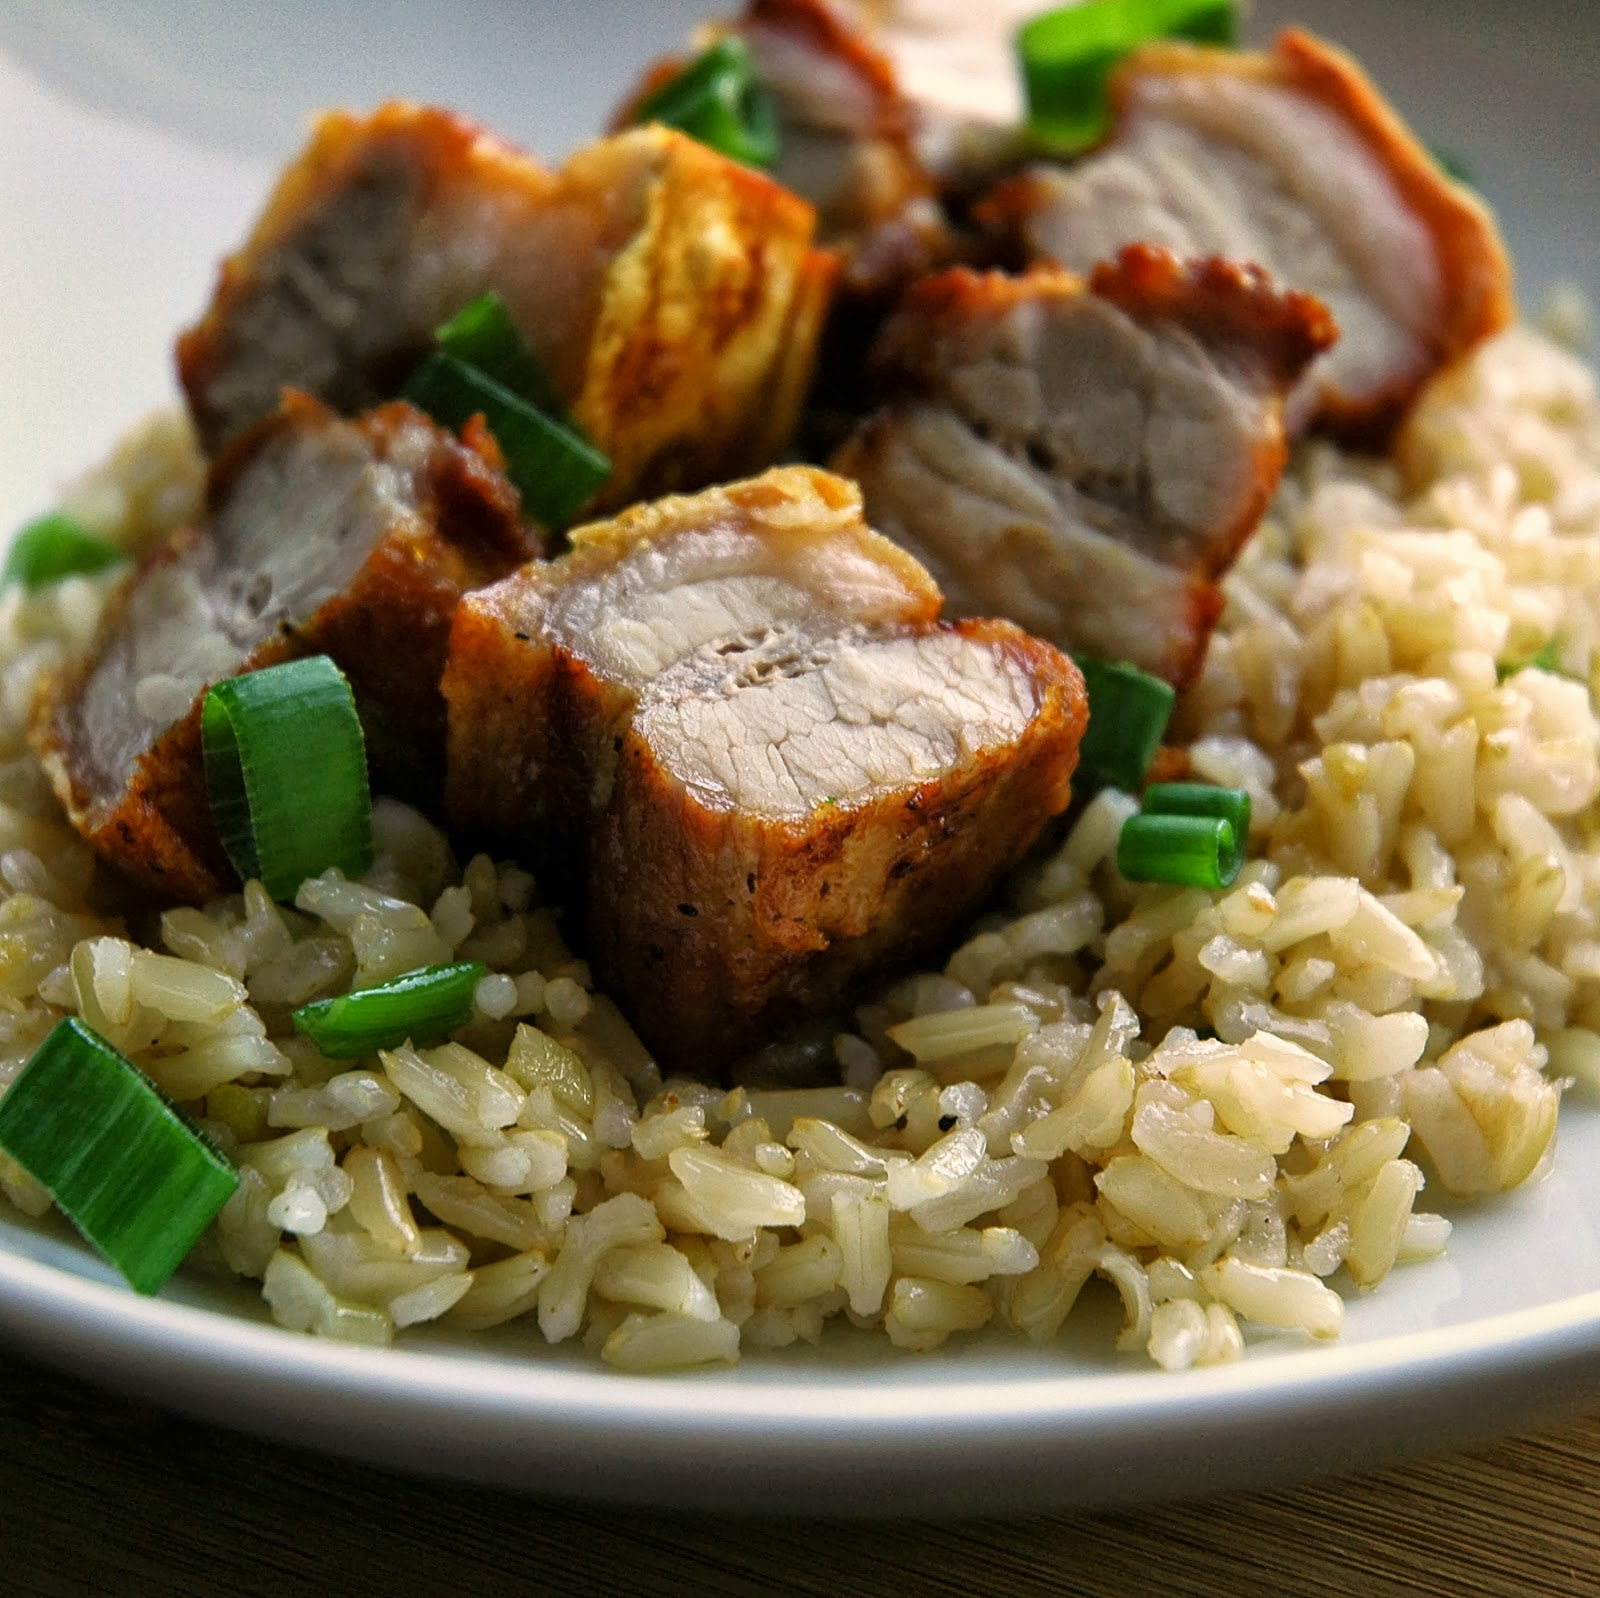 Cooking with mom crispy pork belly garlic fried rice simply for dipping we love to serve the pork with sweet chili sauce or mang tomas the traditional condiment for lechon every crispy salty garlic y bite is so ccuart